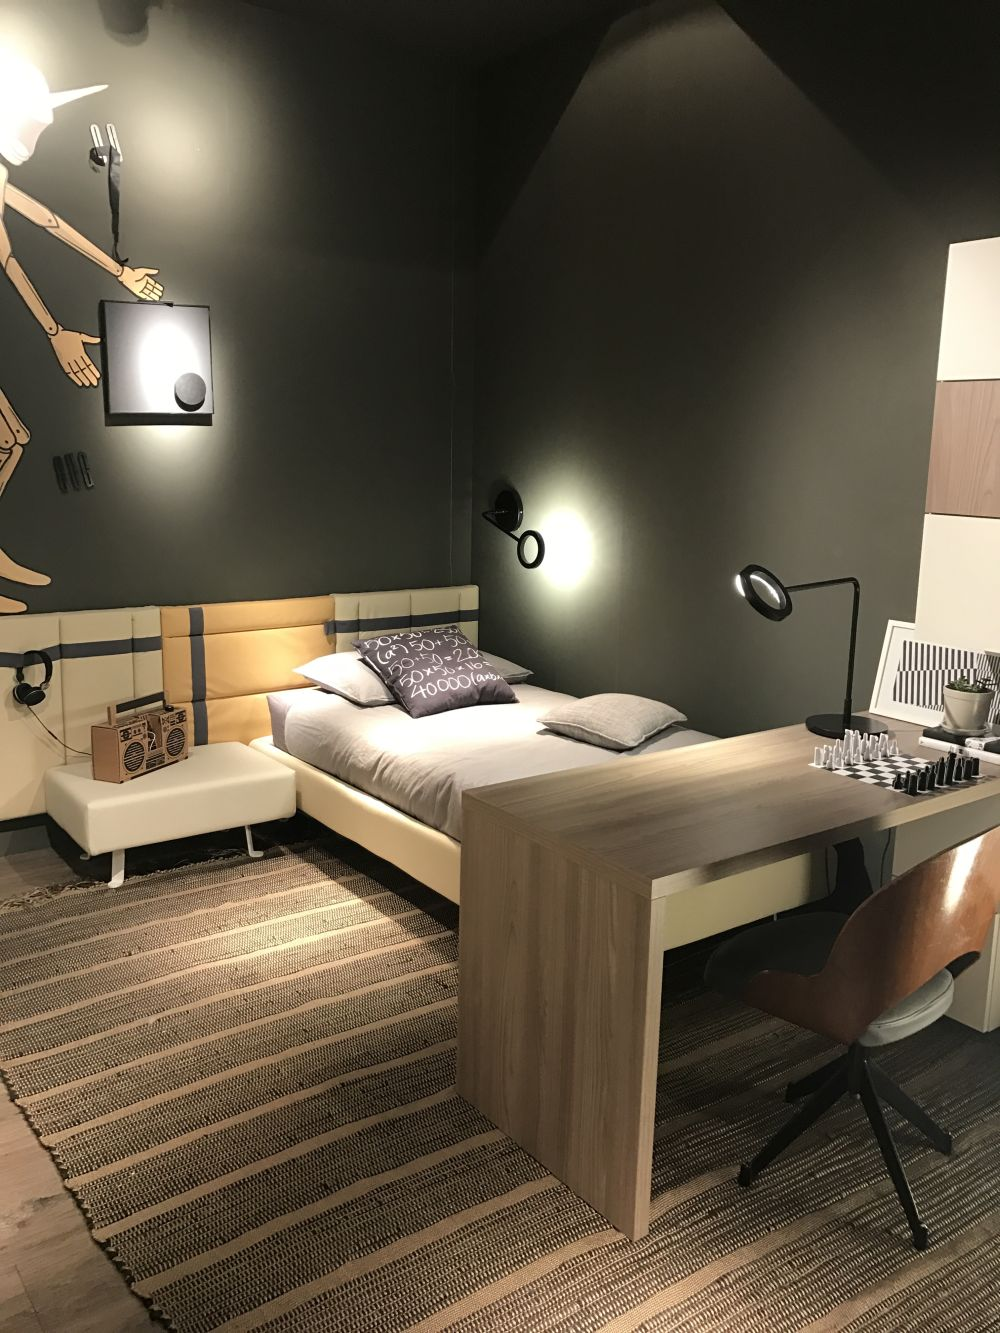 A desk placed at the foot of the bed can make the room look cozy and can also be space-efficient